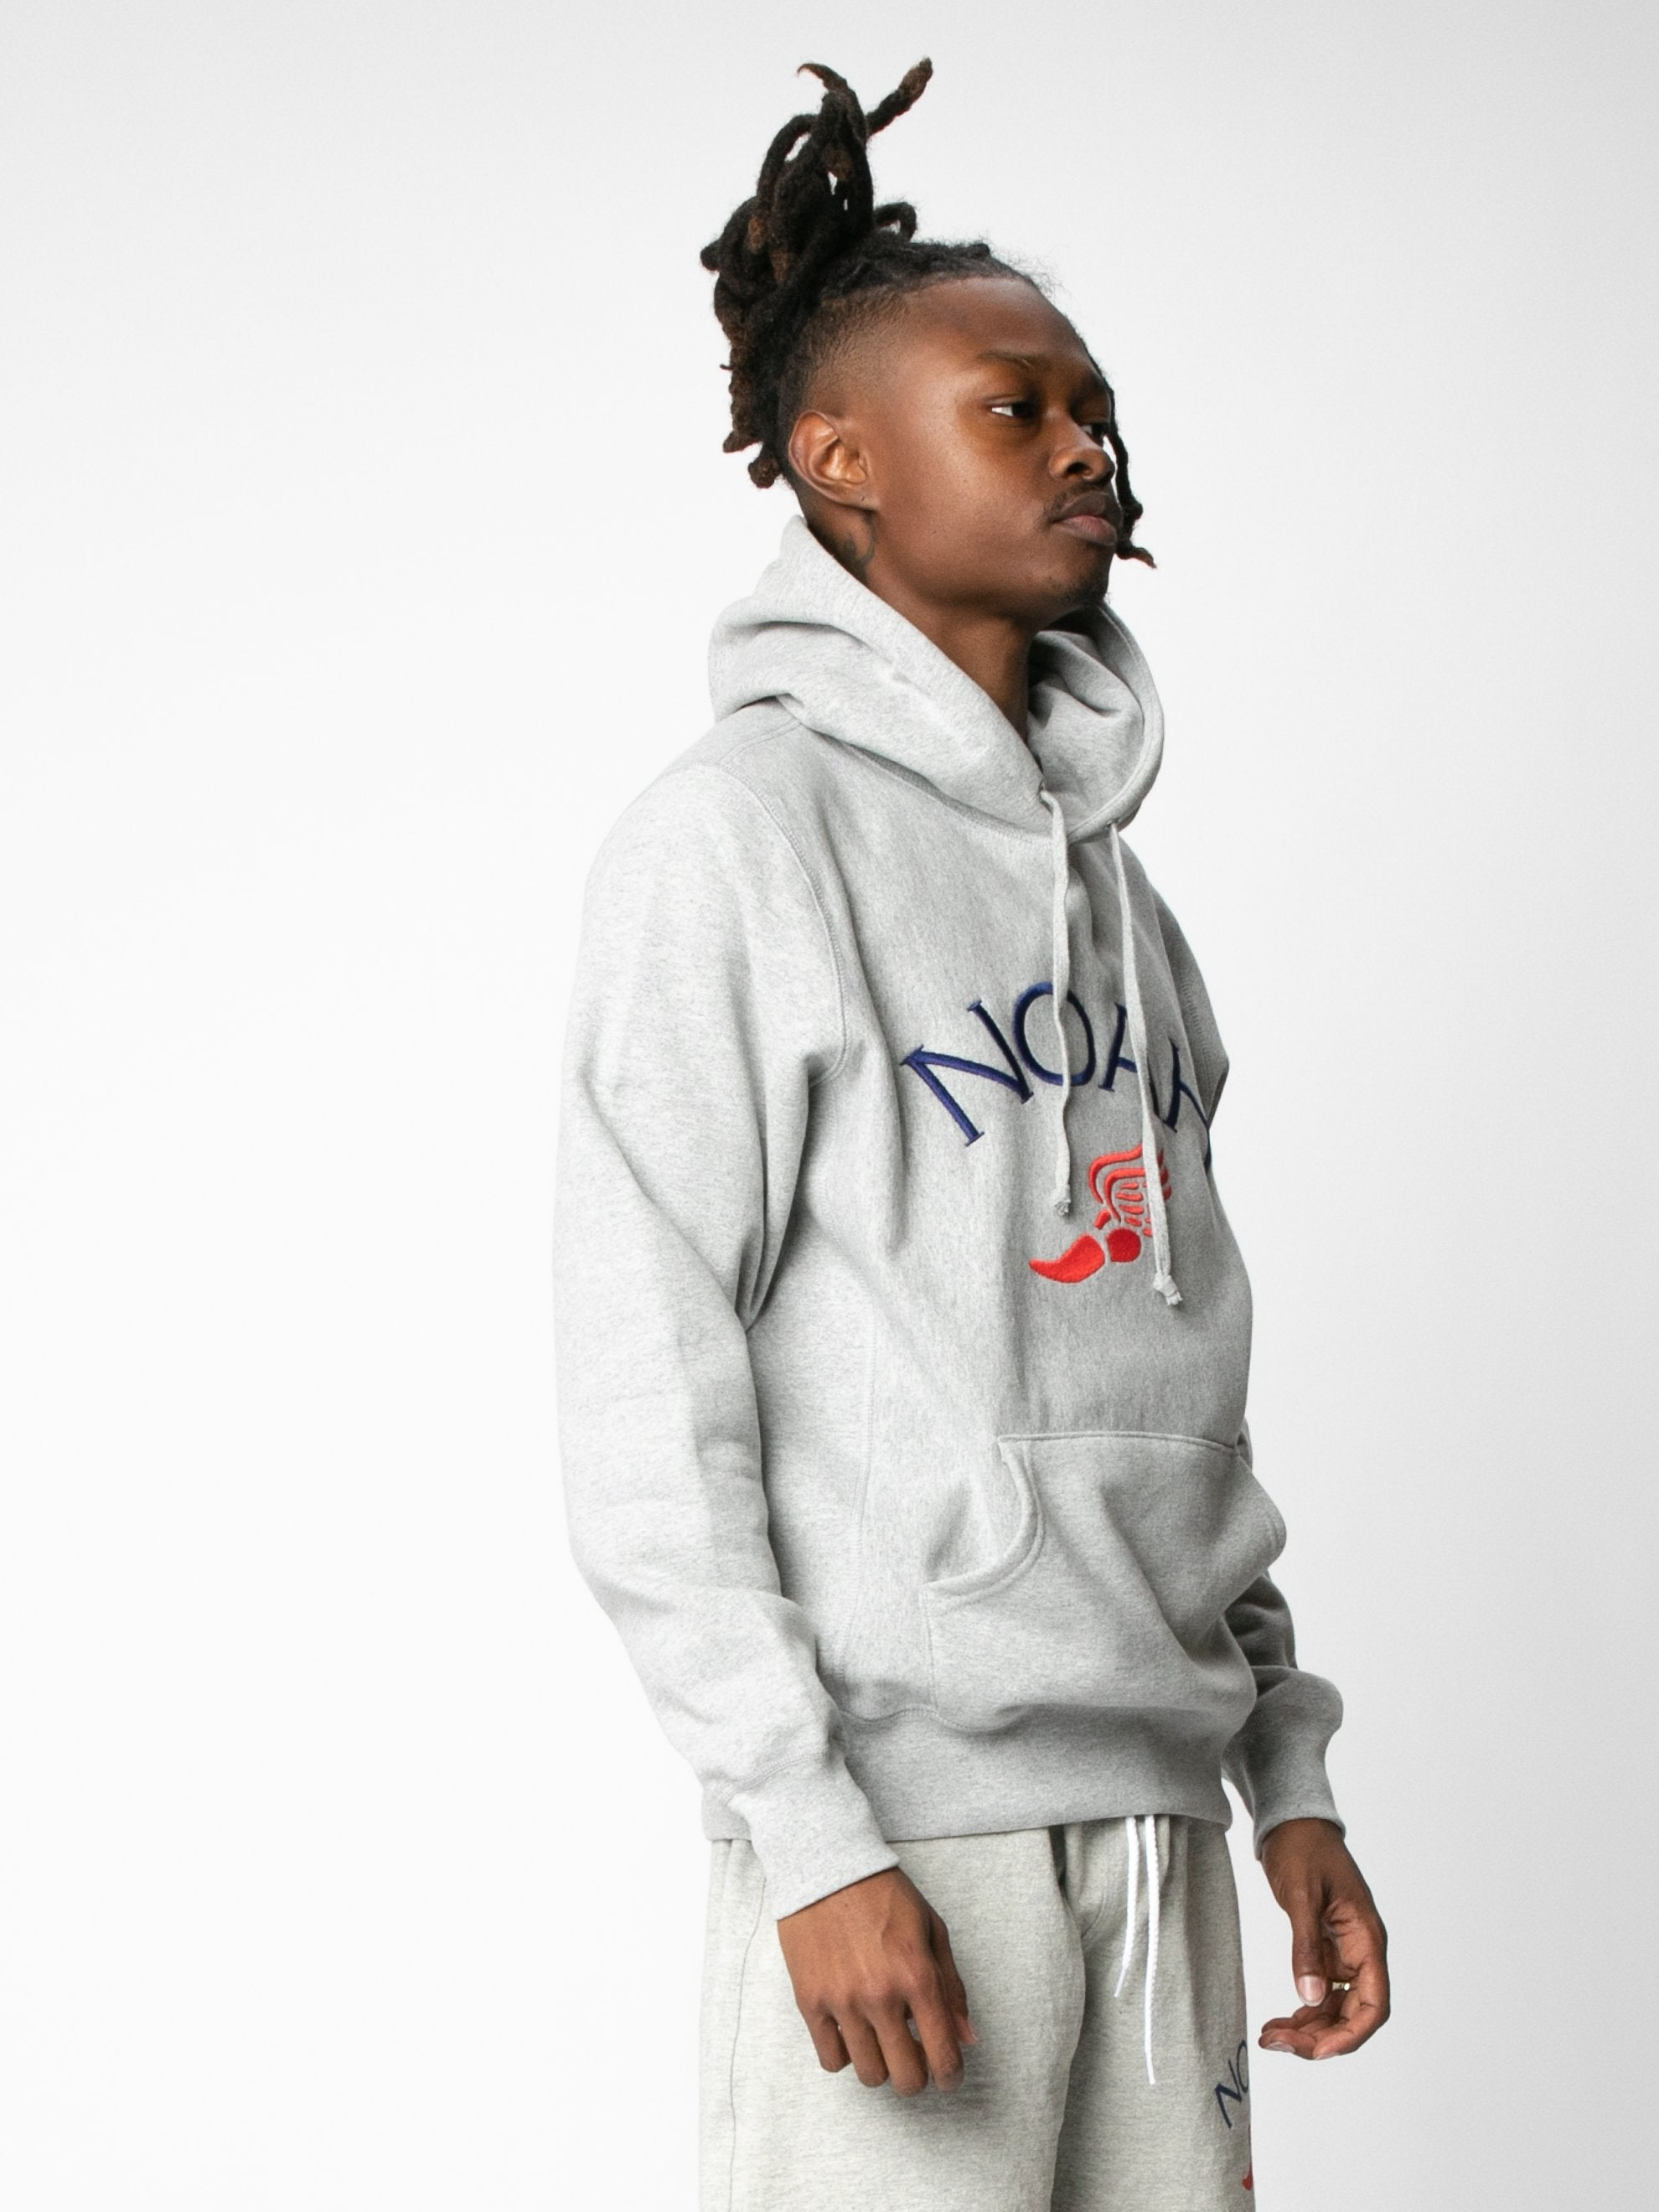 Winged Foot Embroidered Hoodie